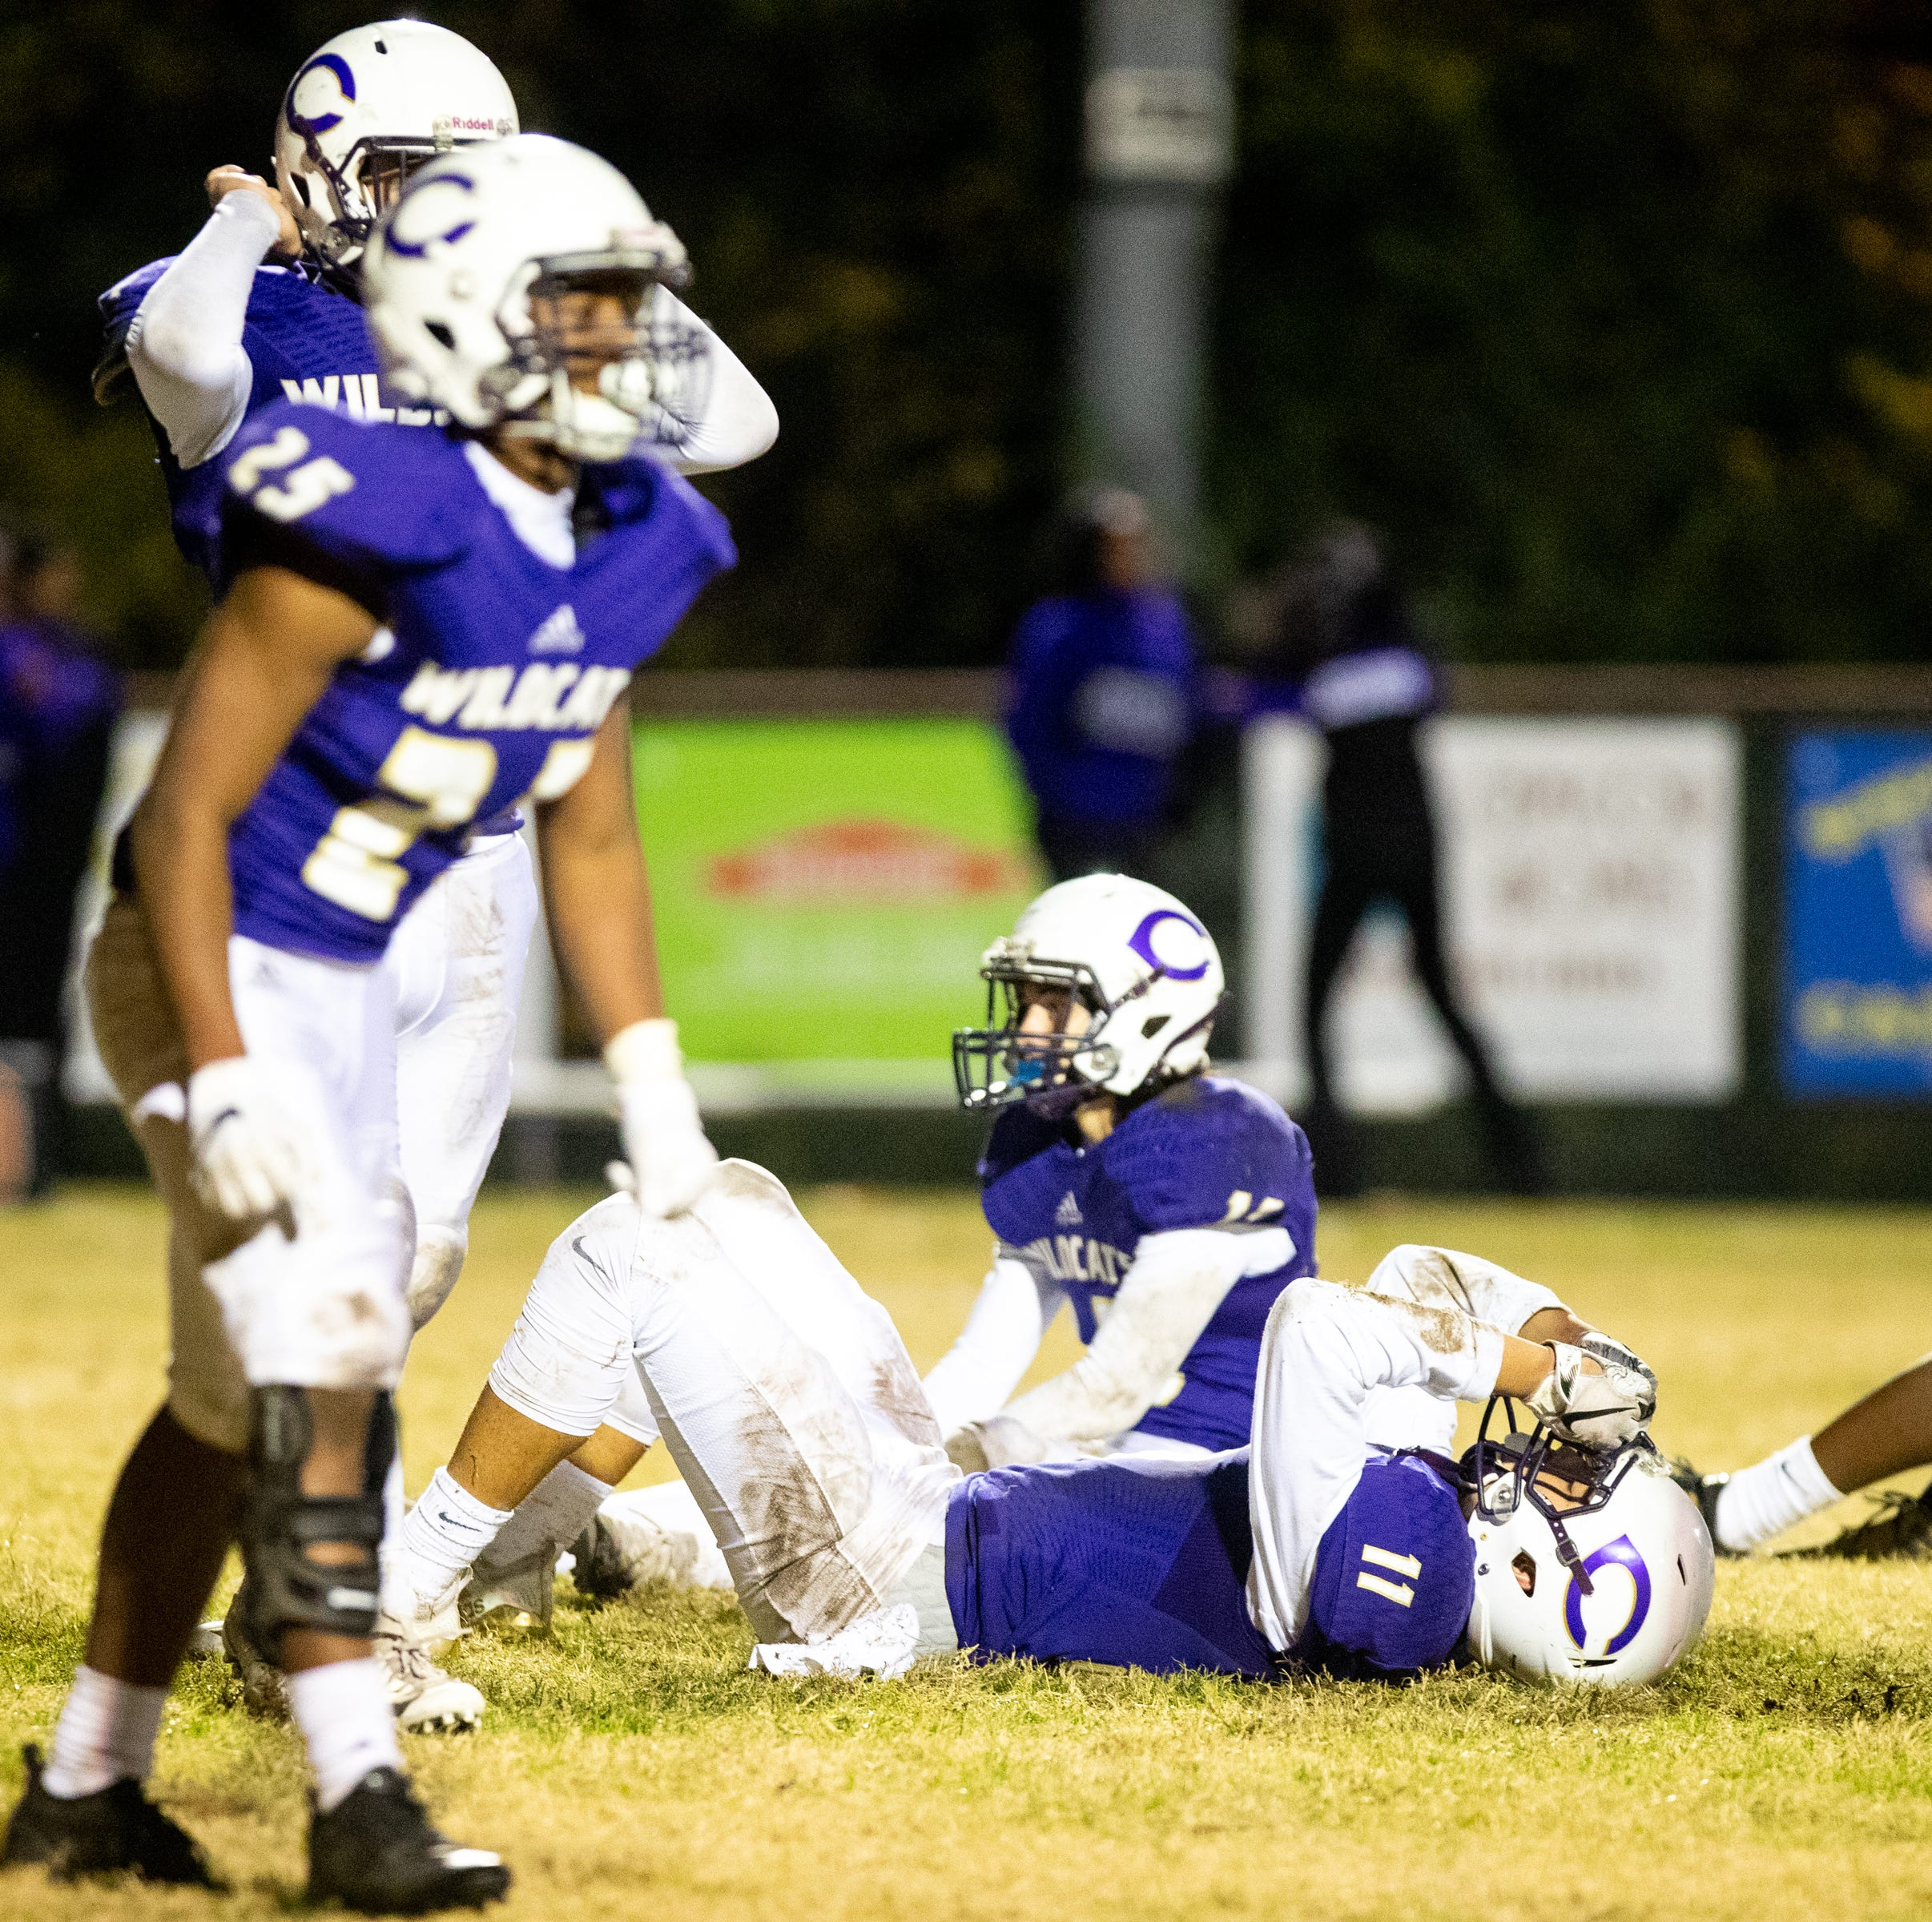 Clarksville High football comes up one point short in OT playoff loss to Southwind